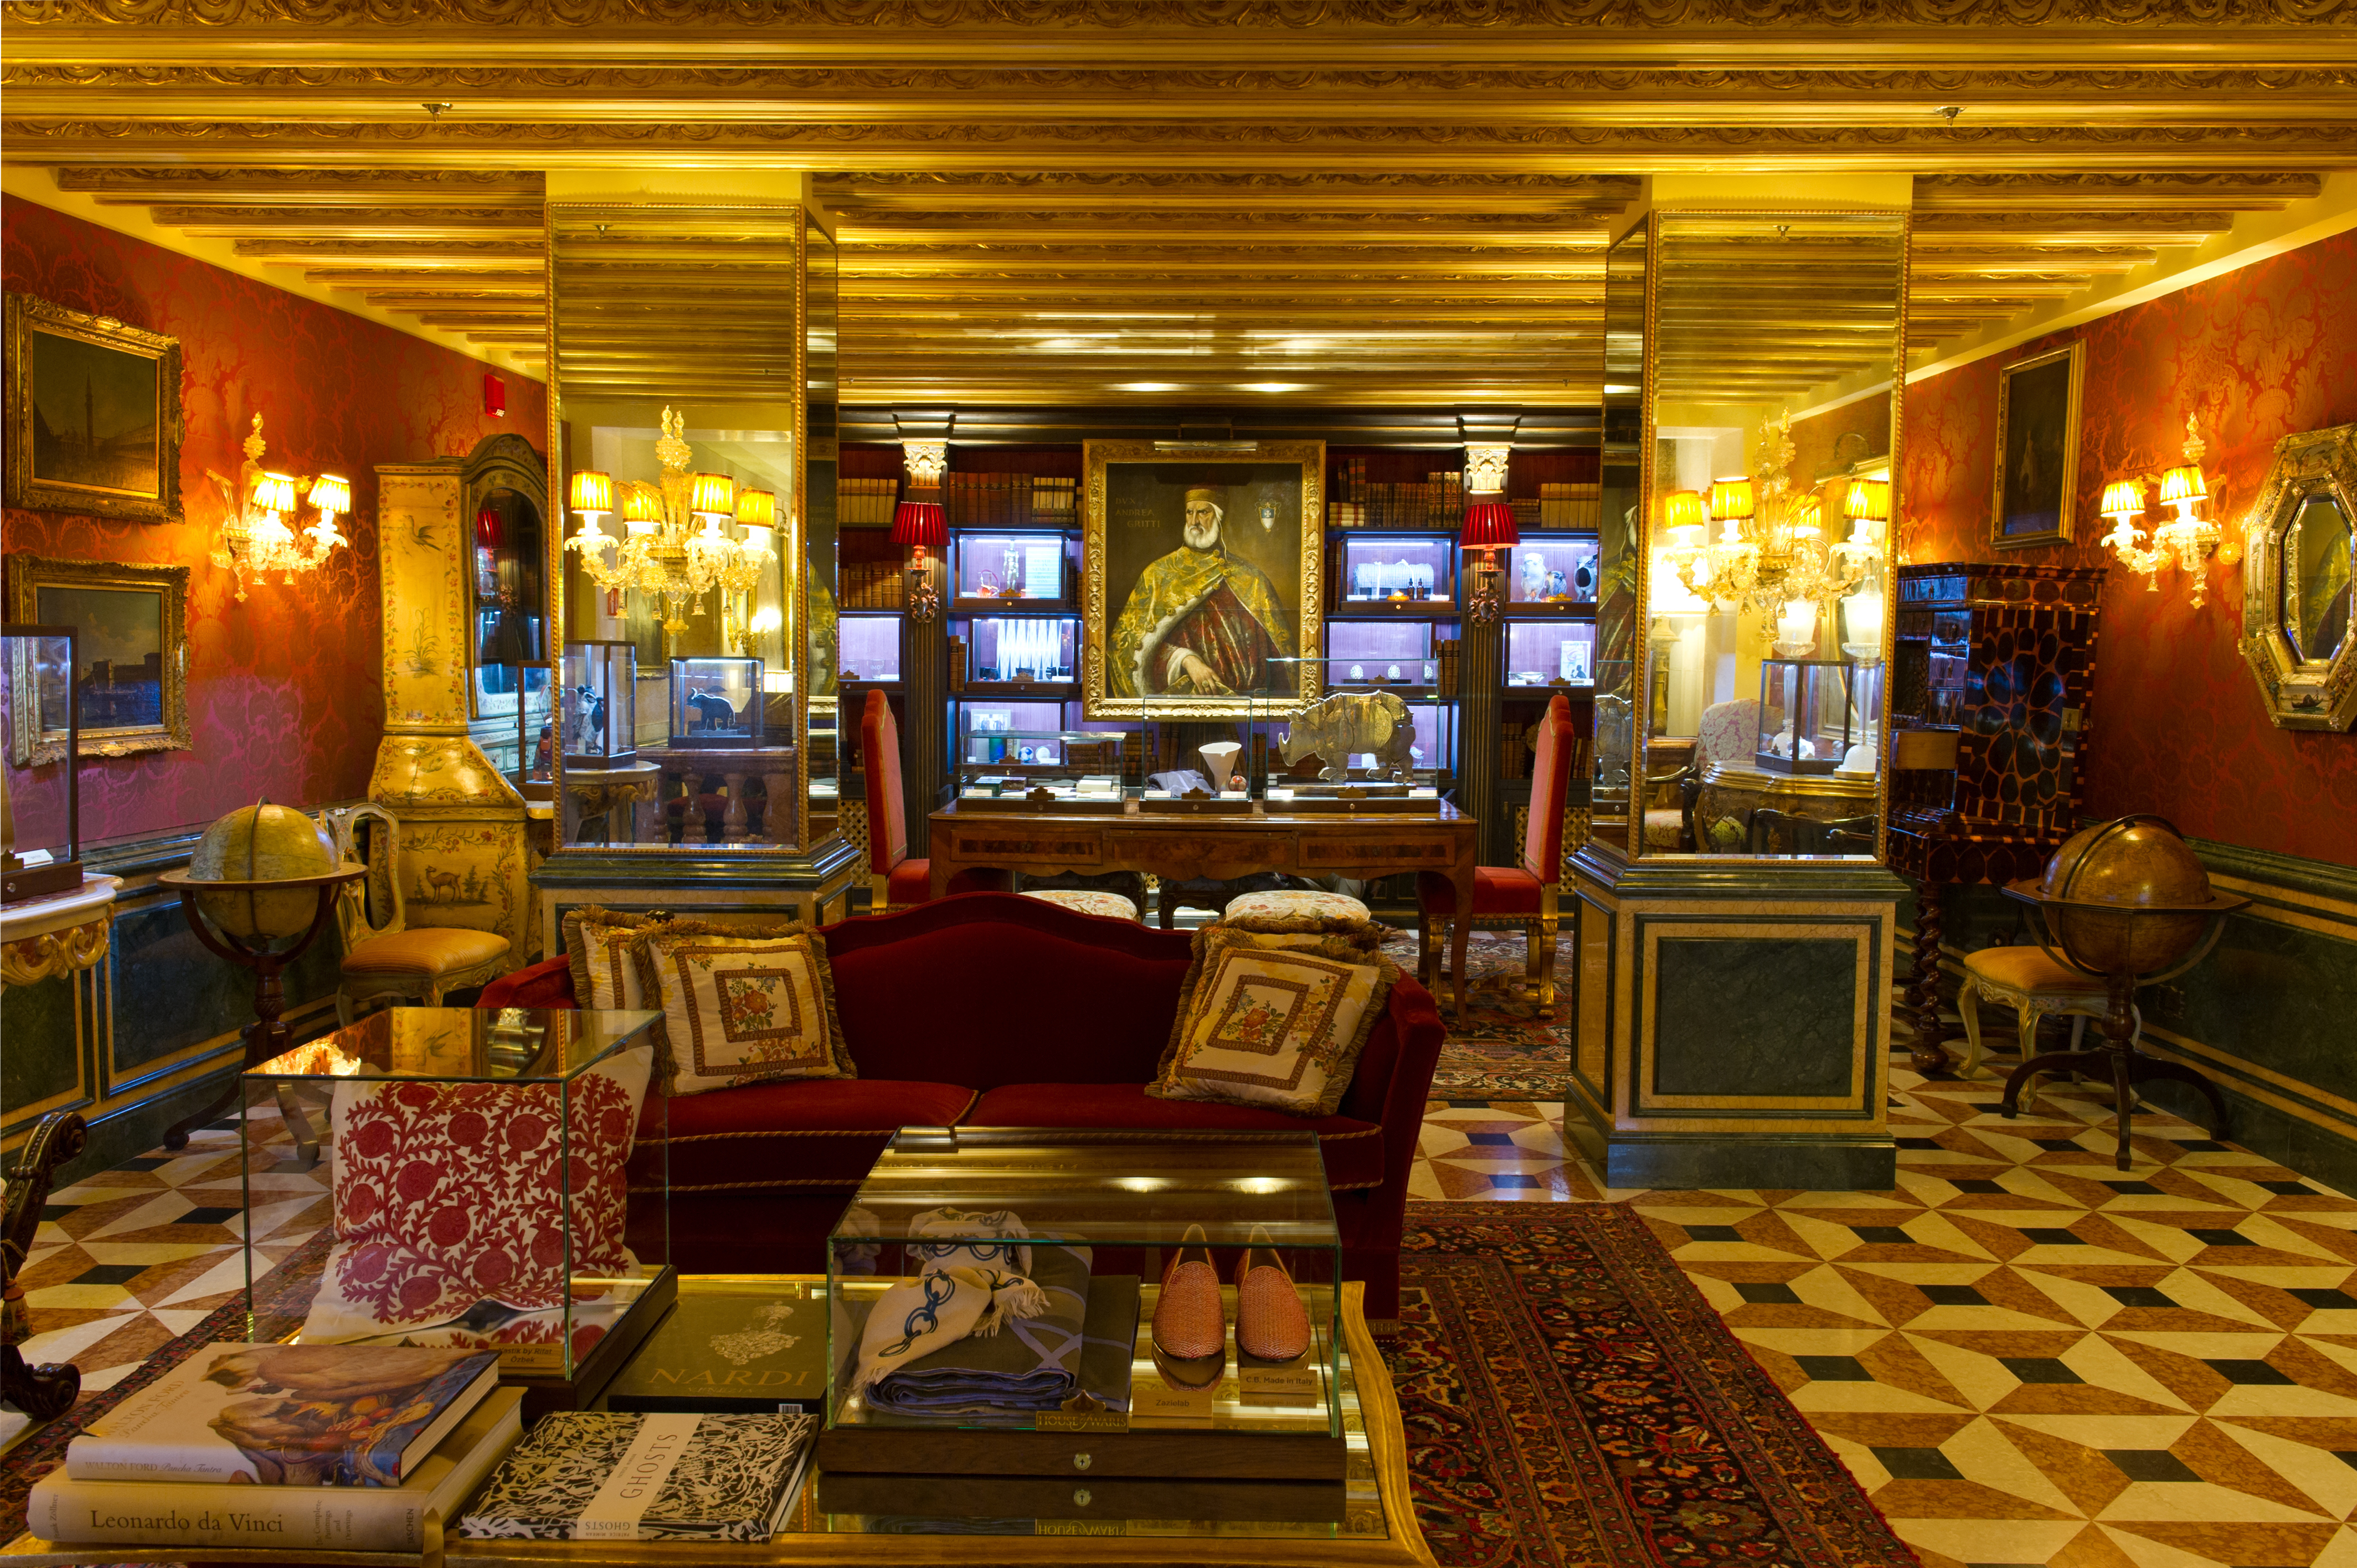 Waris ahluwalia with the luxury collection hotels for The luxury collection hotel